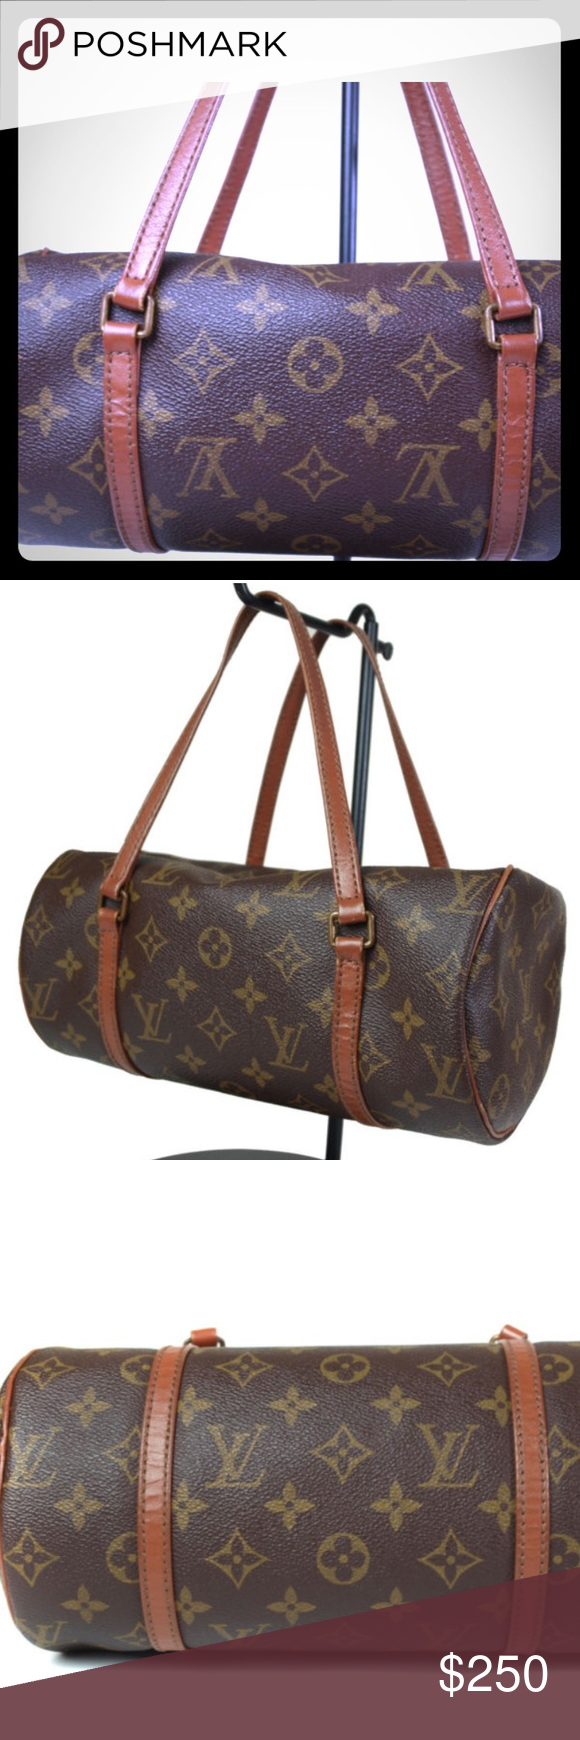 Authentic lv papillon 26 Nice condition everything shown in pics very nice Louis Vuitton Bags Mini Bags